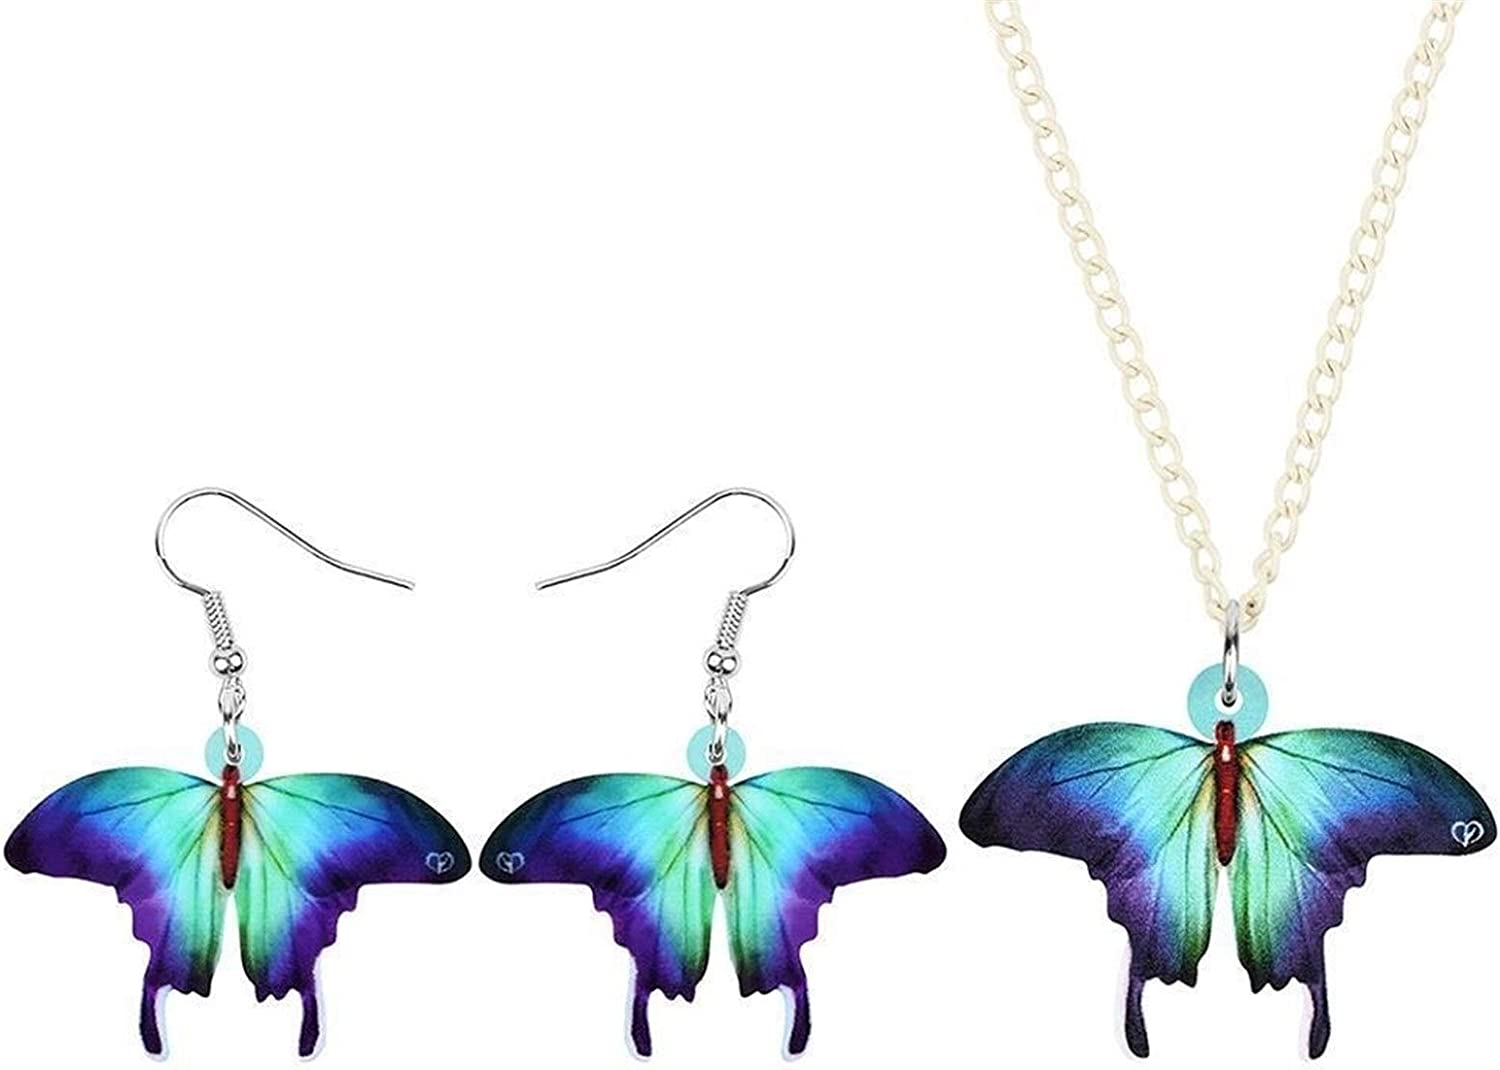 Necklace Acrylic Max 59% OFF Blue Jewelry Daily bargain sale Sets Animal for Earrings